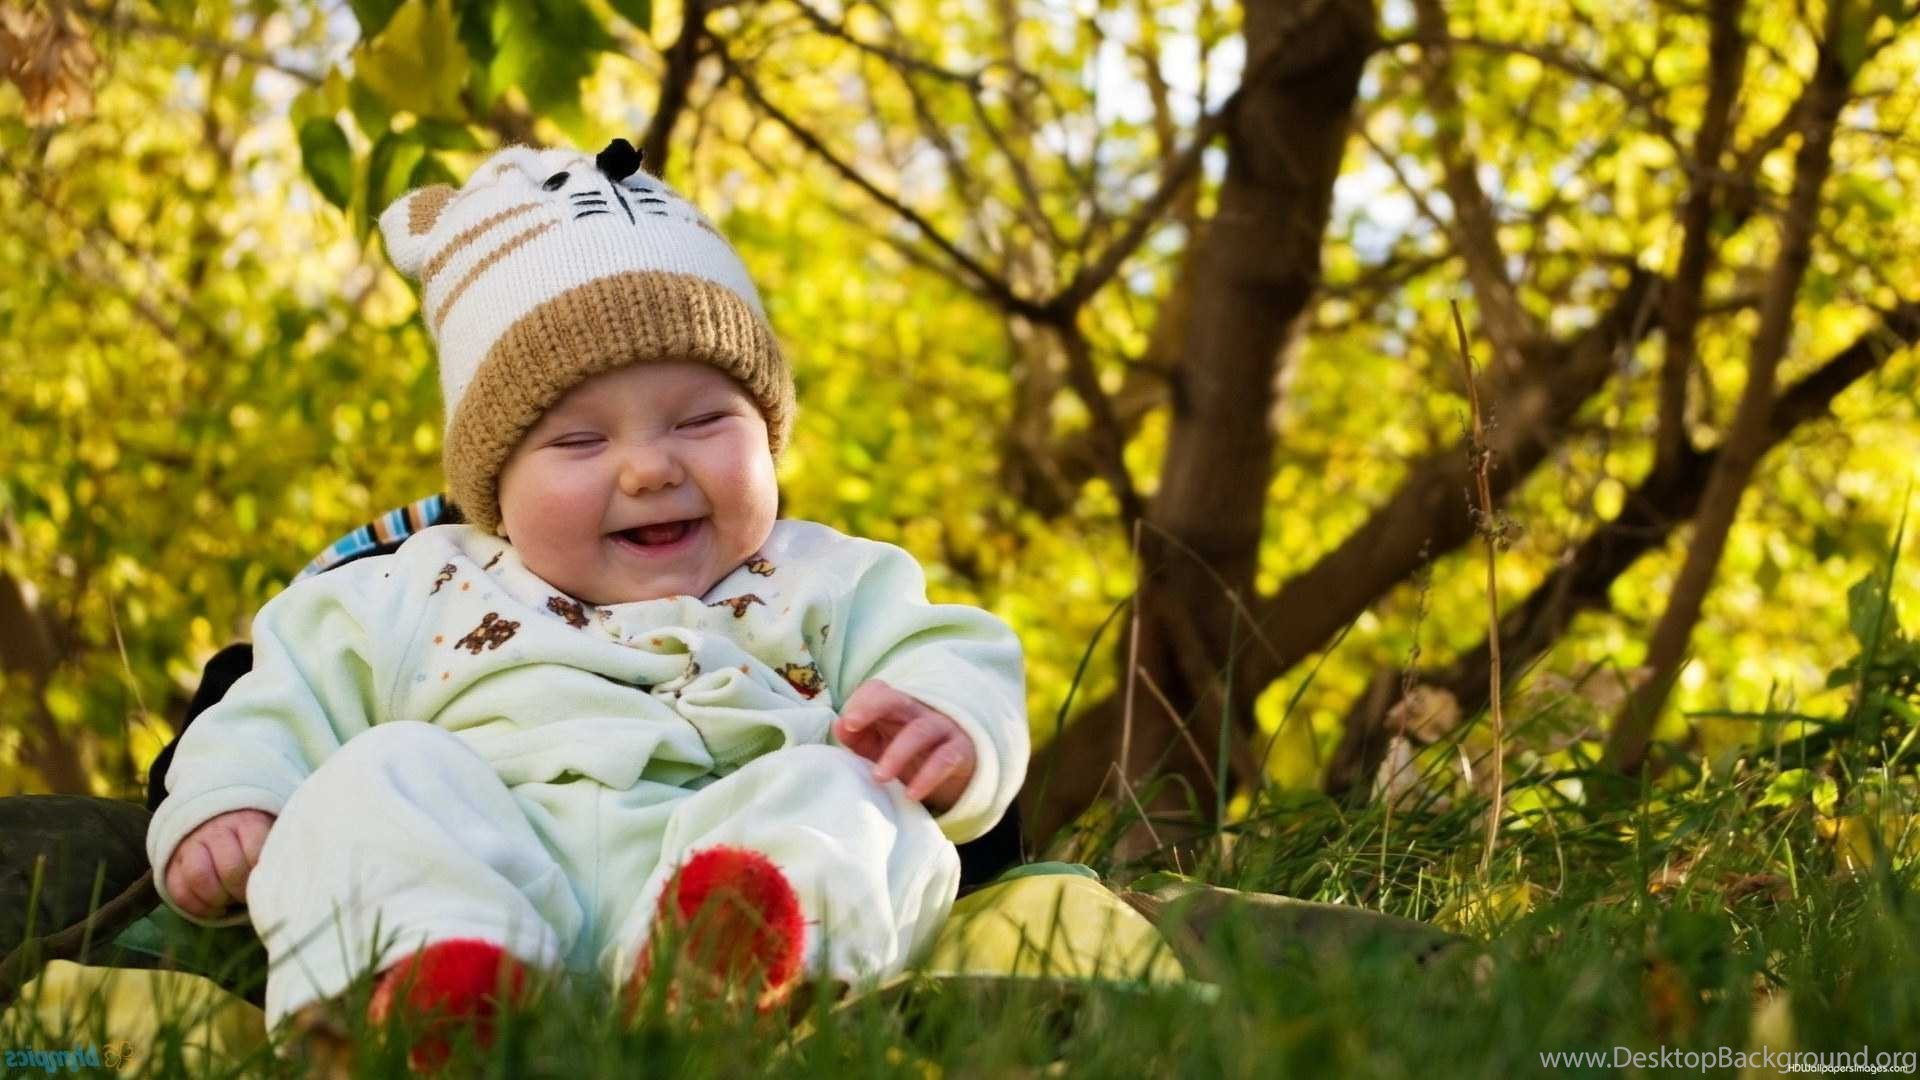 Baby Pictures Wallpapers Lovely Laughing Cute Baby Wallpaper Free site